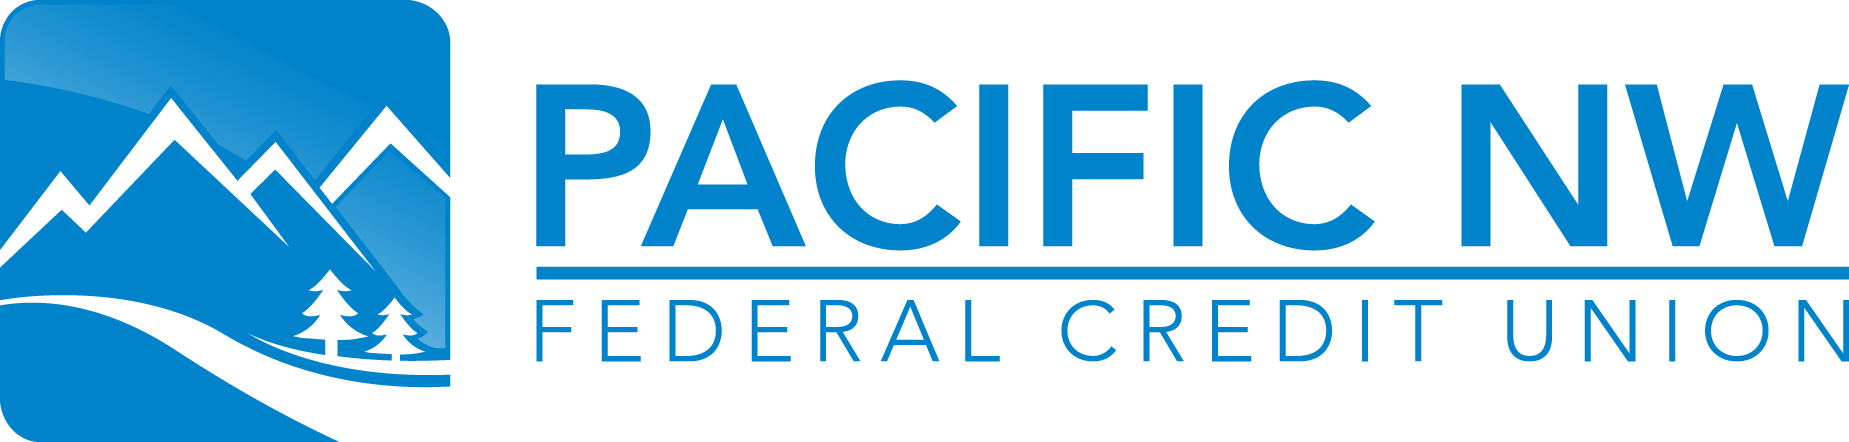 Pacific NW Federal Credit Union